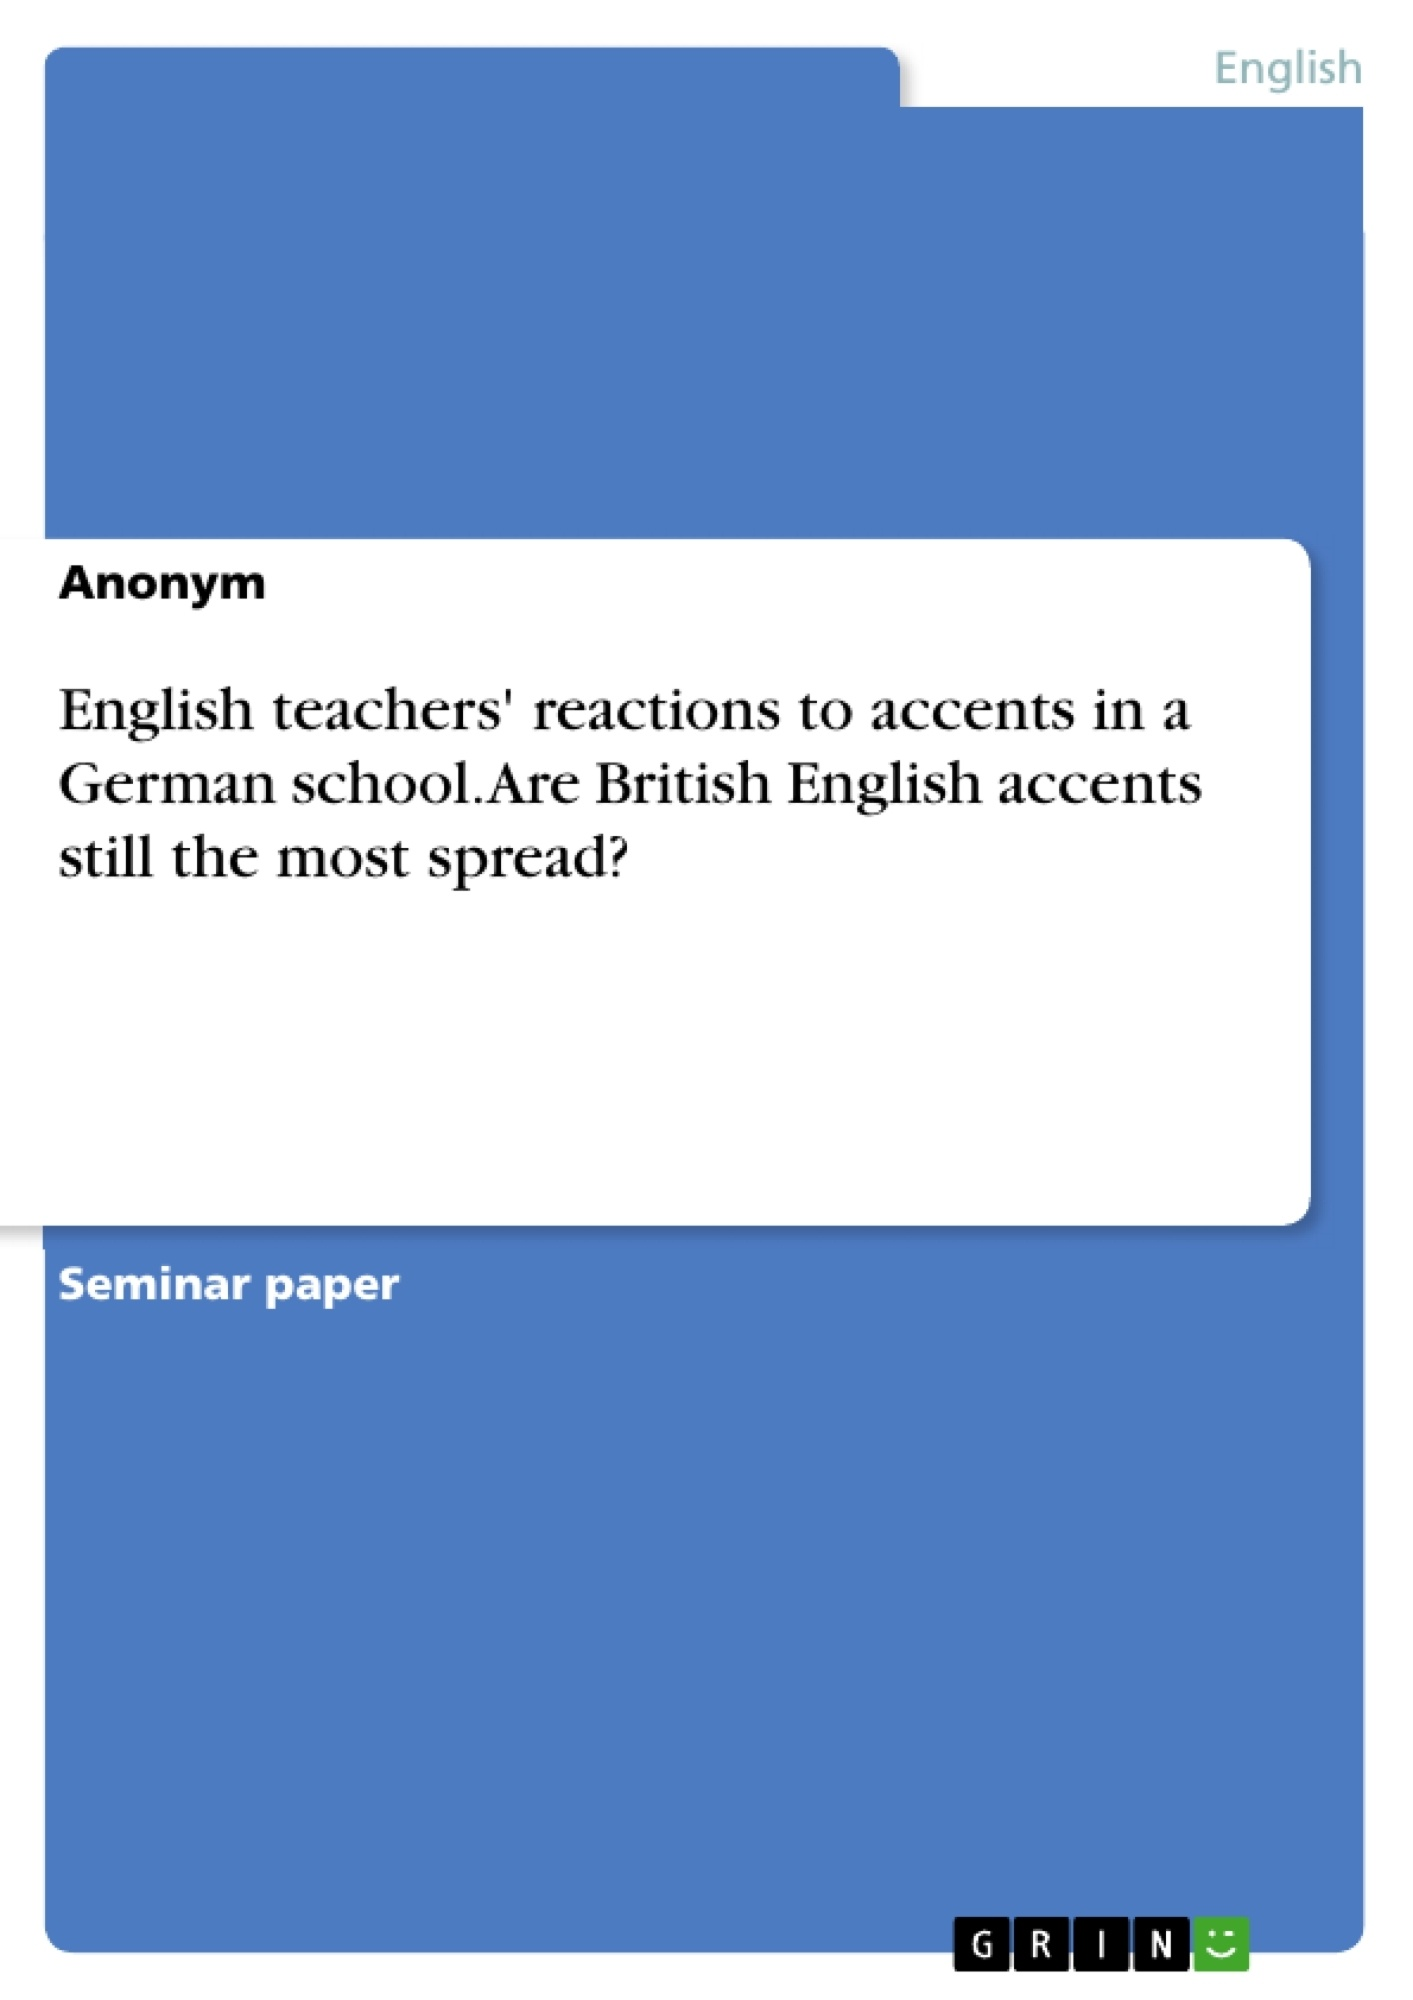 Title: English teachers' reactions to accents in a German school. Are British English accents still the most spread?